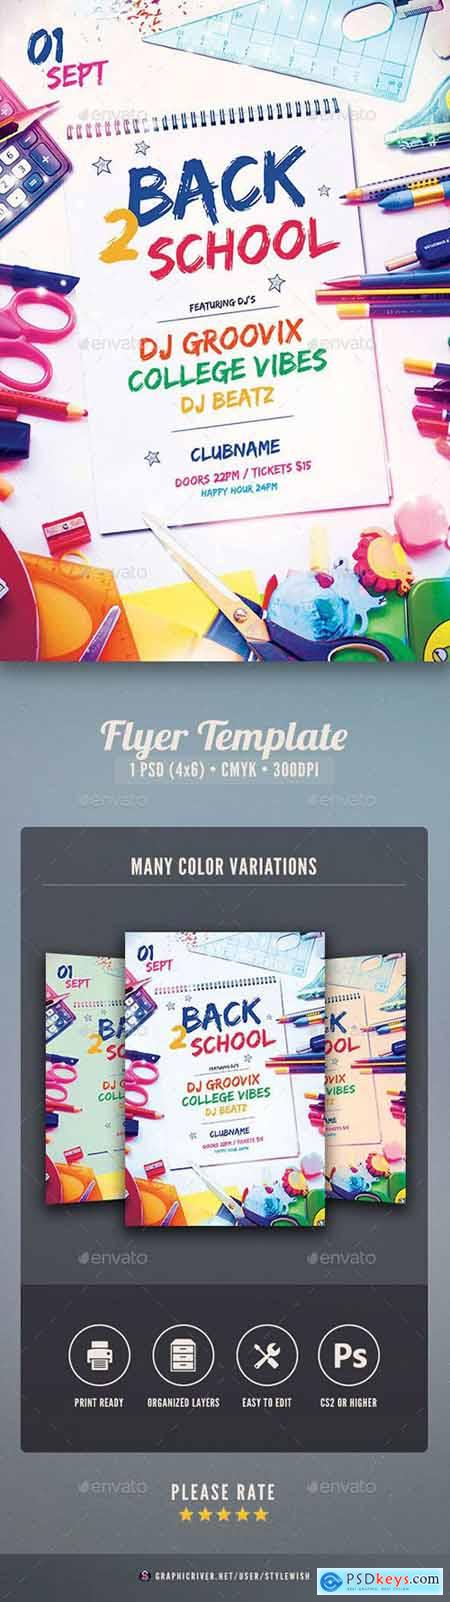 Graphicriver Back 2 School Flyer